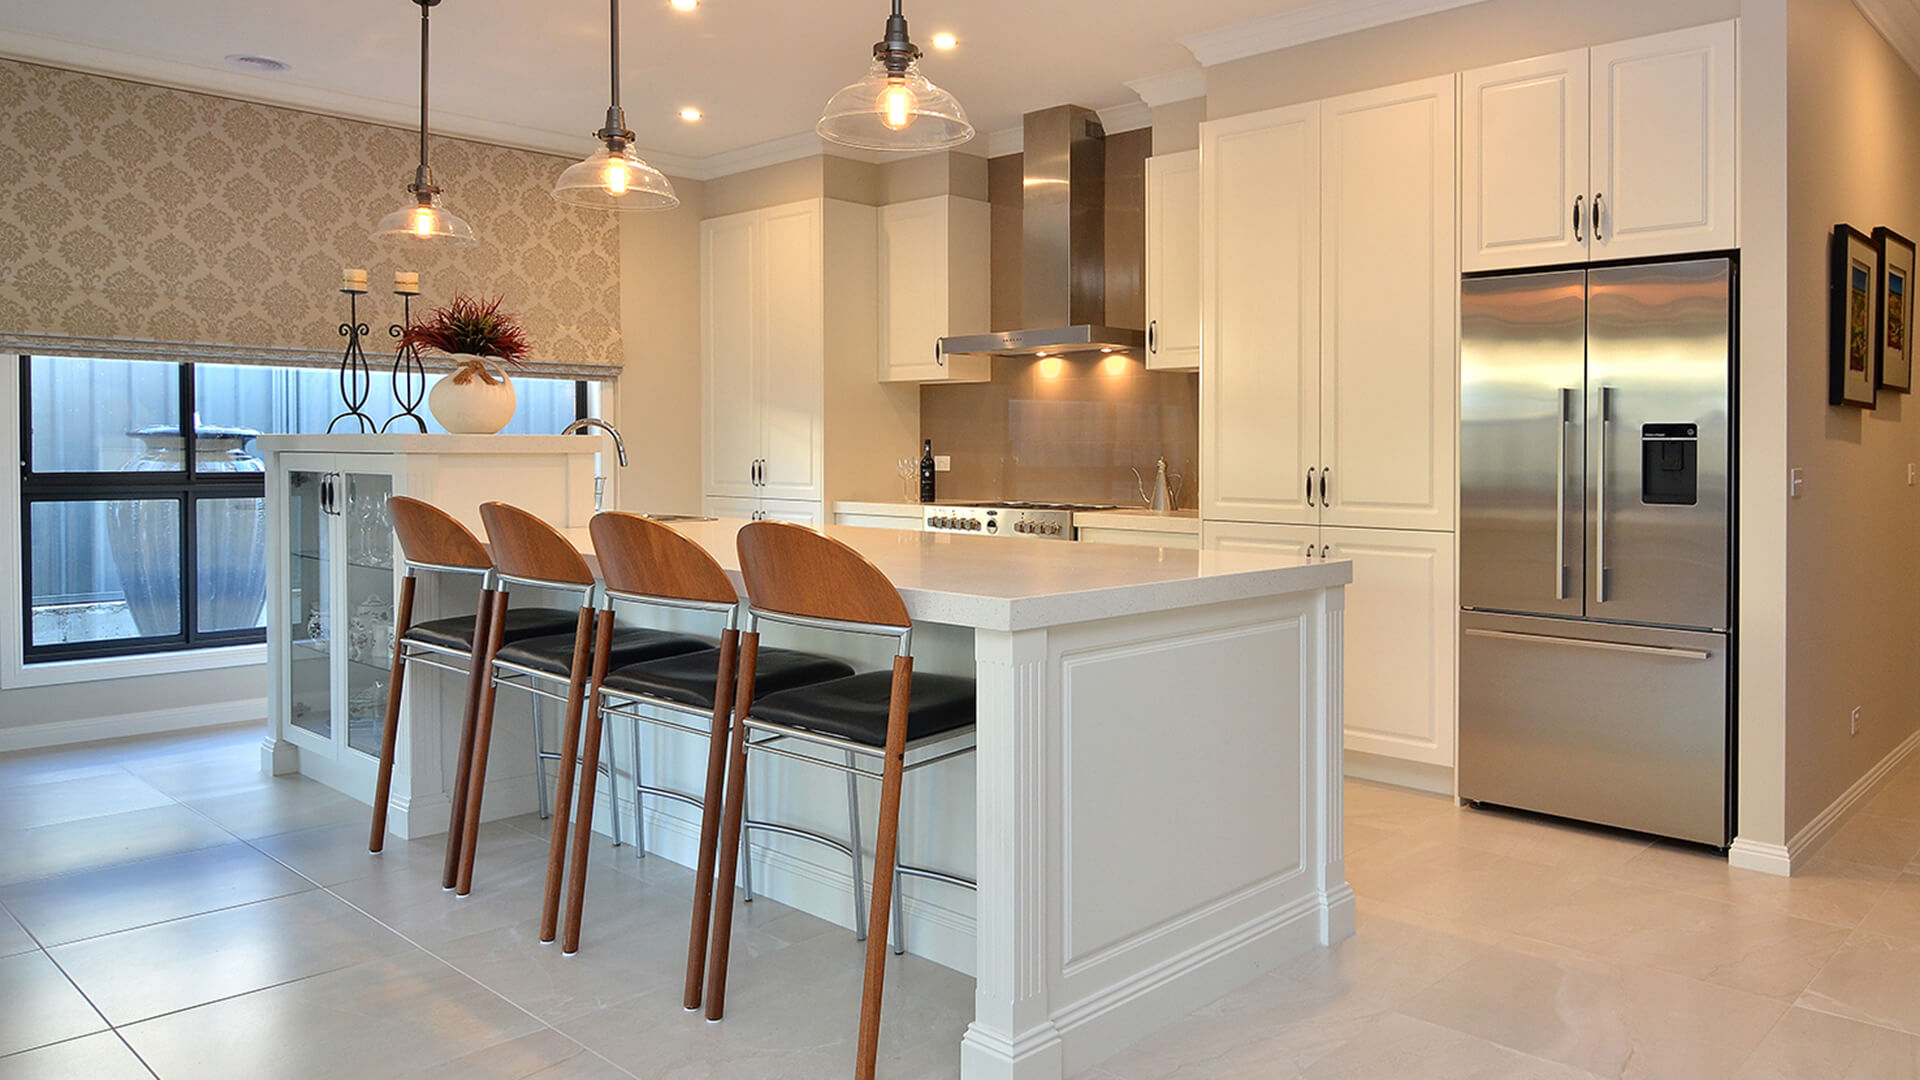 Custom Design 1 - Kitchen